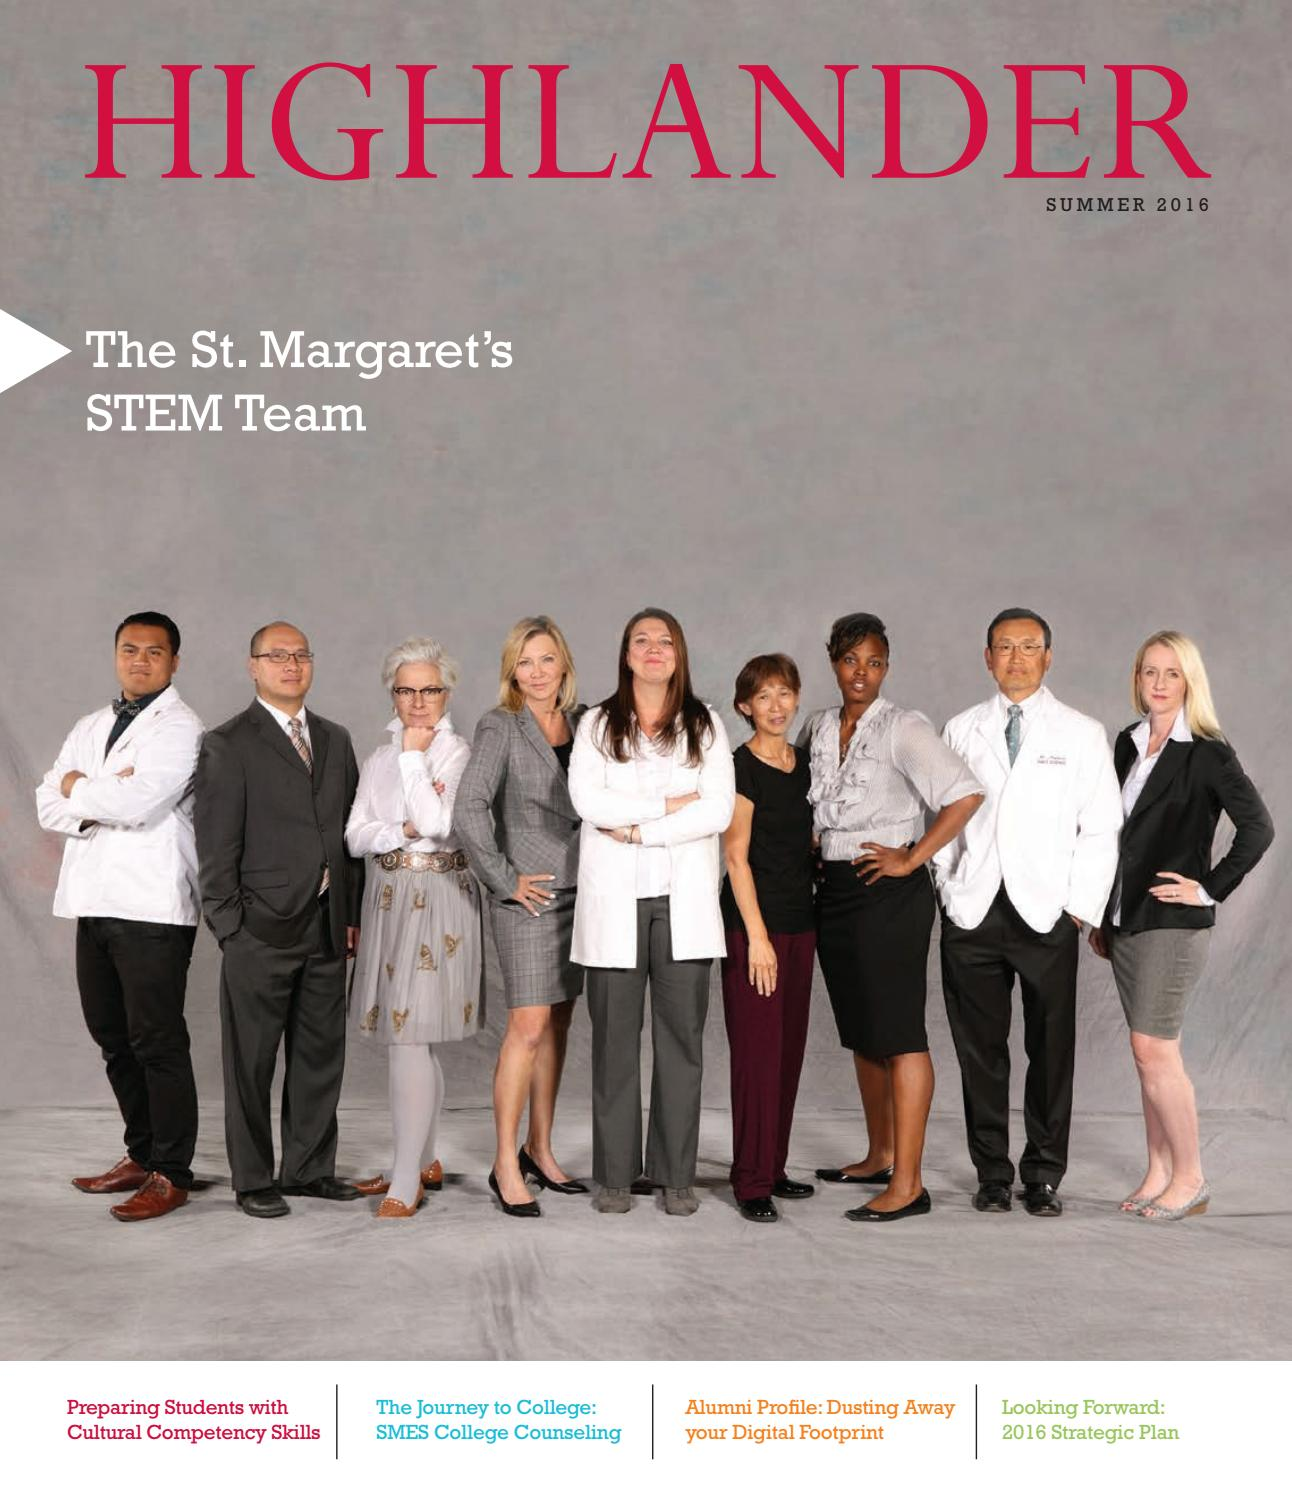 Highlander Summer 2016 By St Margarets Episcopal School Issuu Game At The Toy Fair In New York City Is Called Circuit